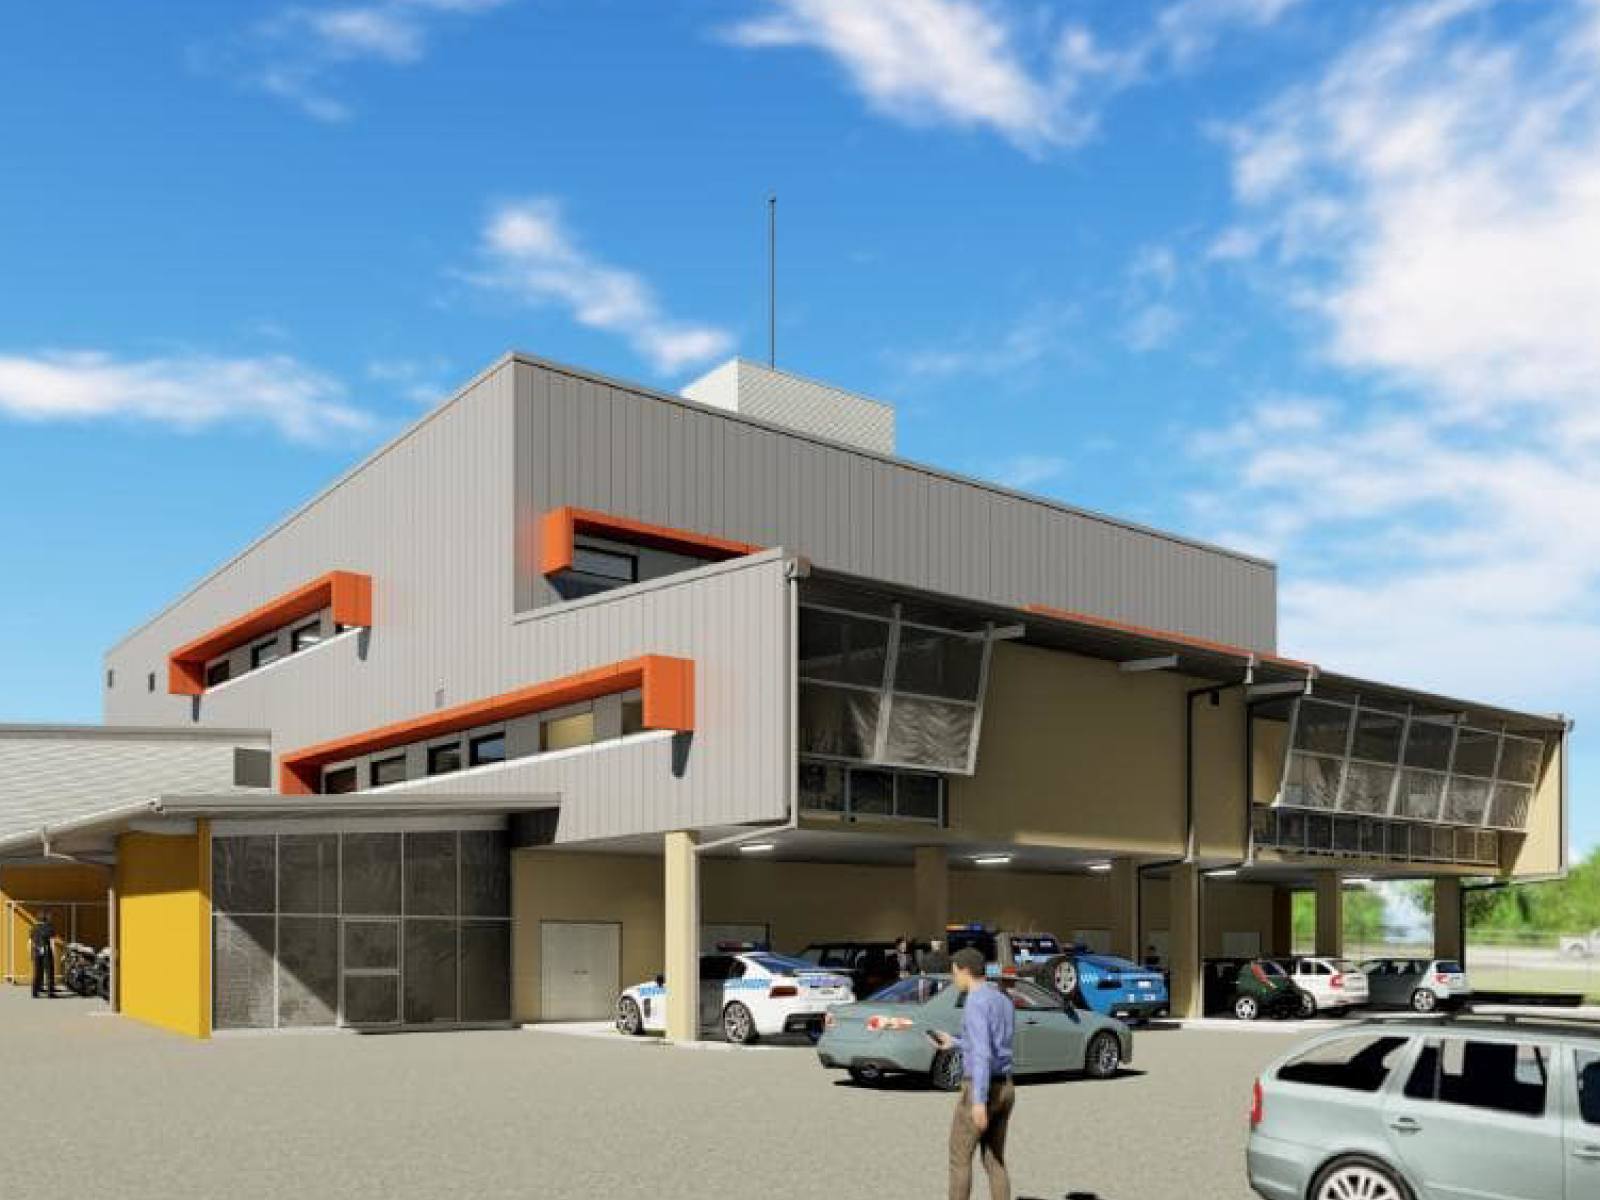 New Palmerston Police Station exterior view